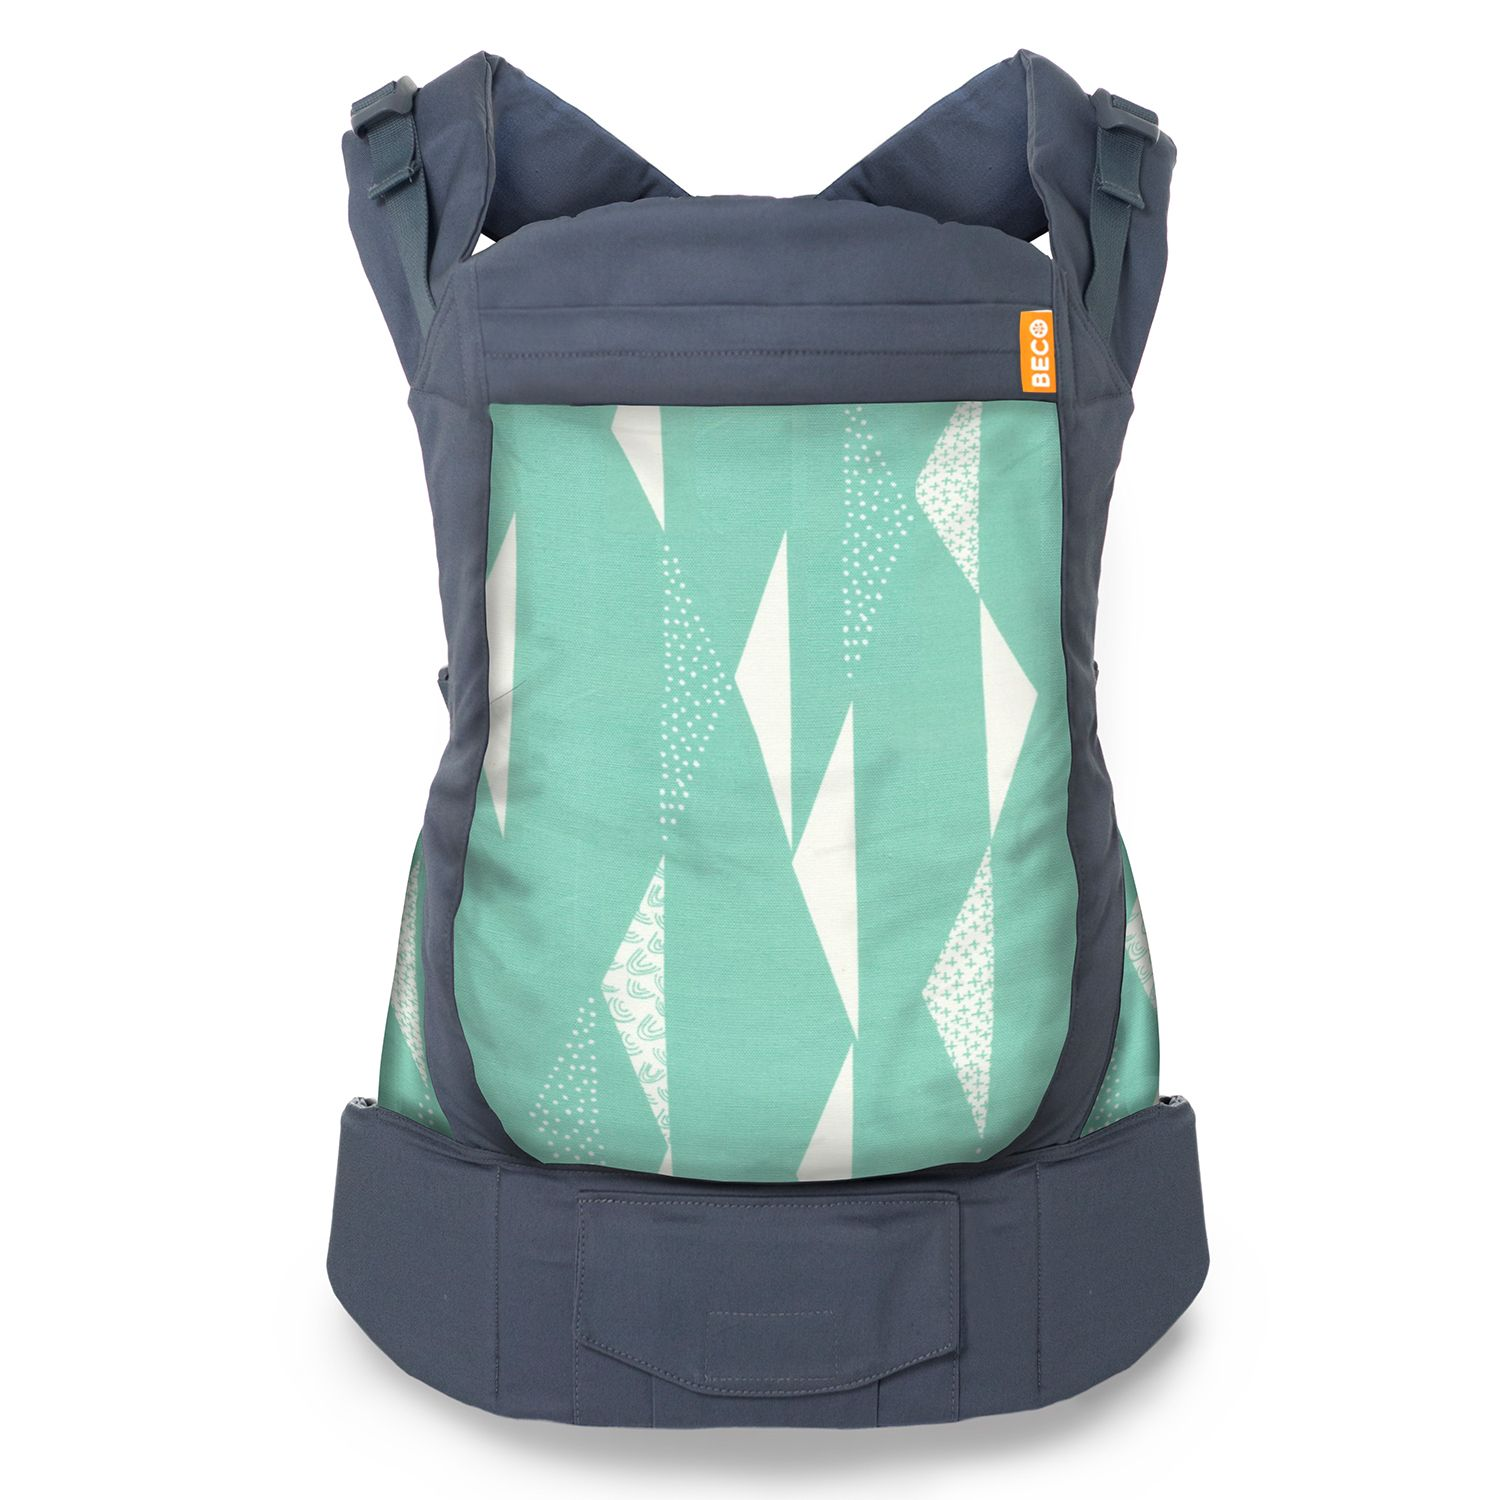 Beco Toddler Carrier Sail by Beco Baby Carrier